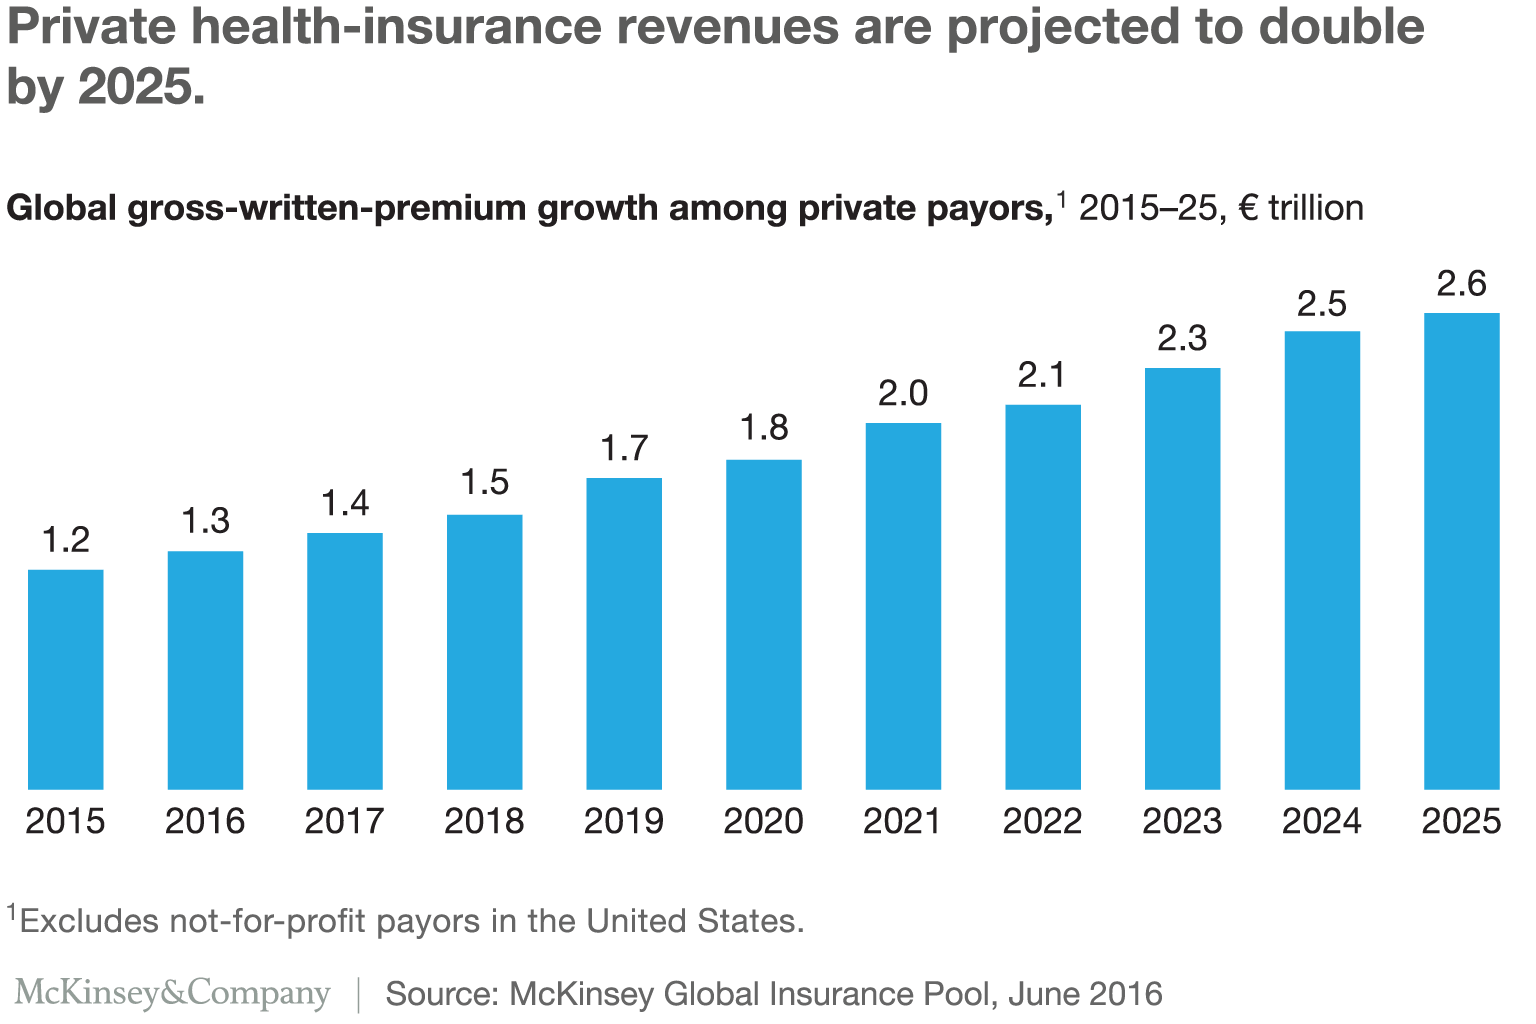 Private health-insurance revenues are projected to double by 2025.